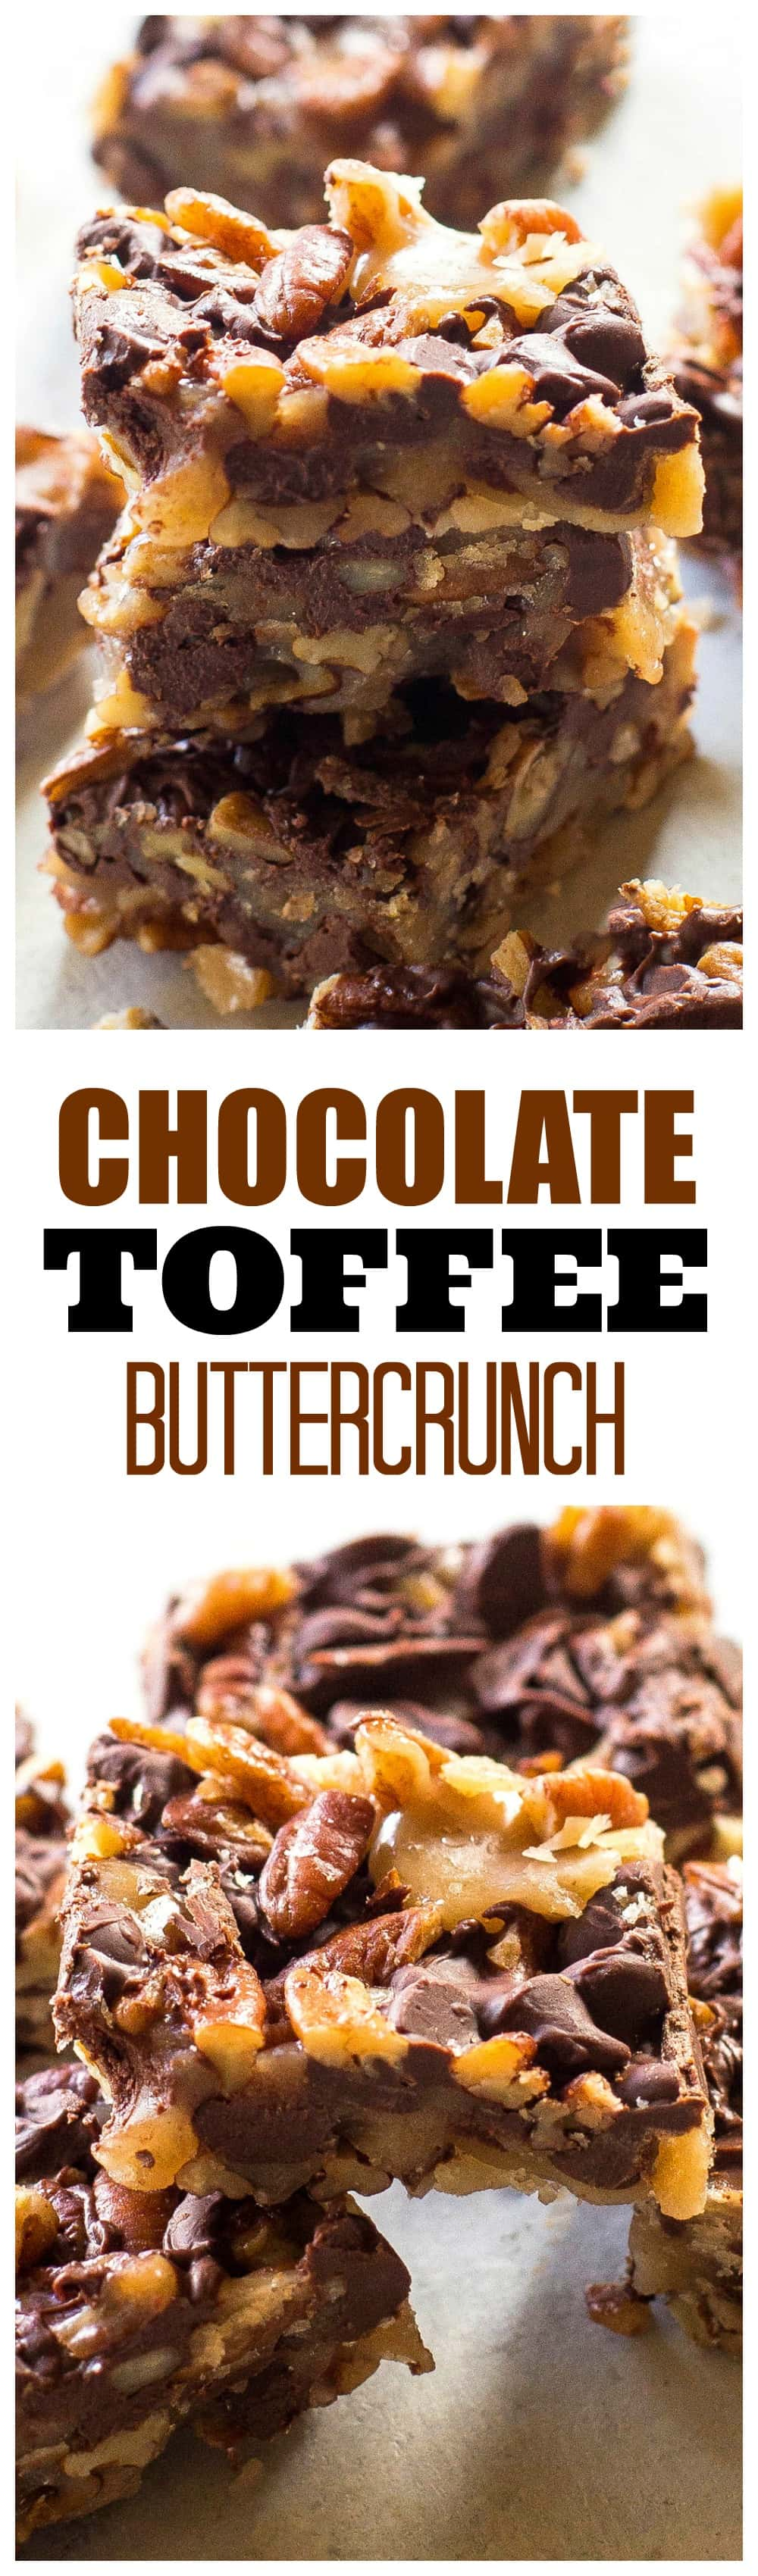 Chocolate Toffee Buttercrunch - toffee, nuts, and chocolate and so easy to make! the-girl-who-ate-everything.com